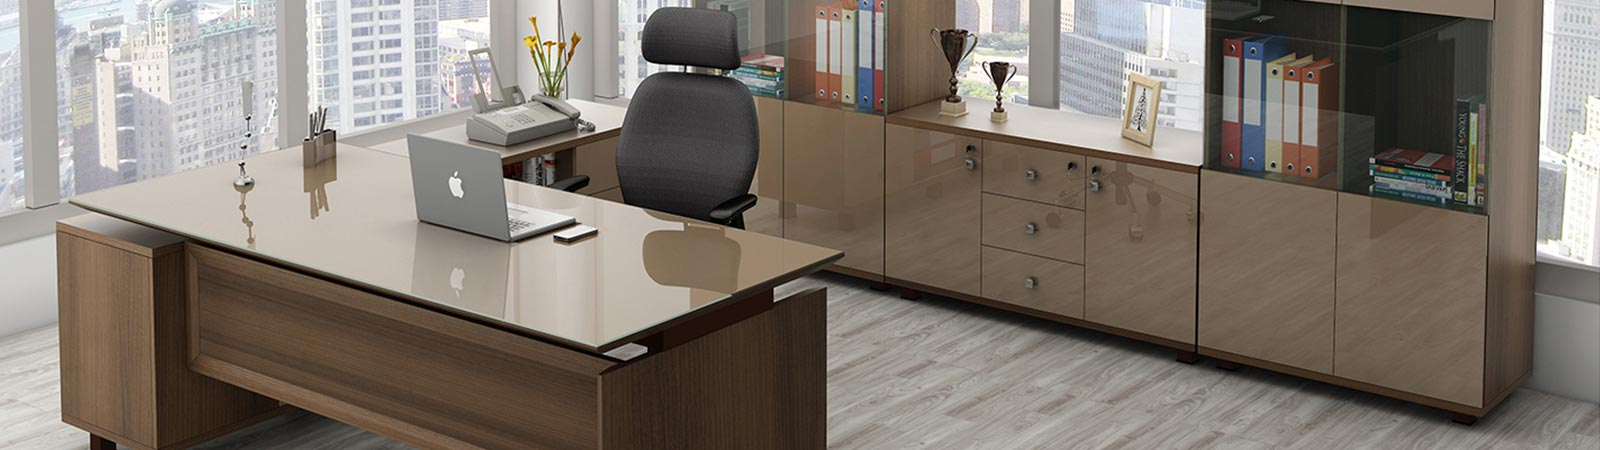 Modern Office Tables in Delhi NCR, India